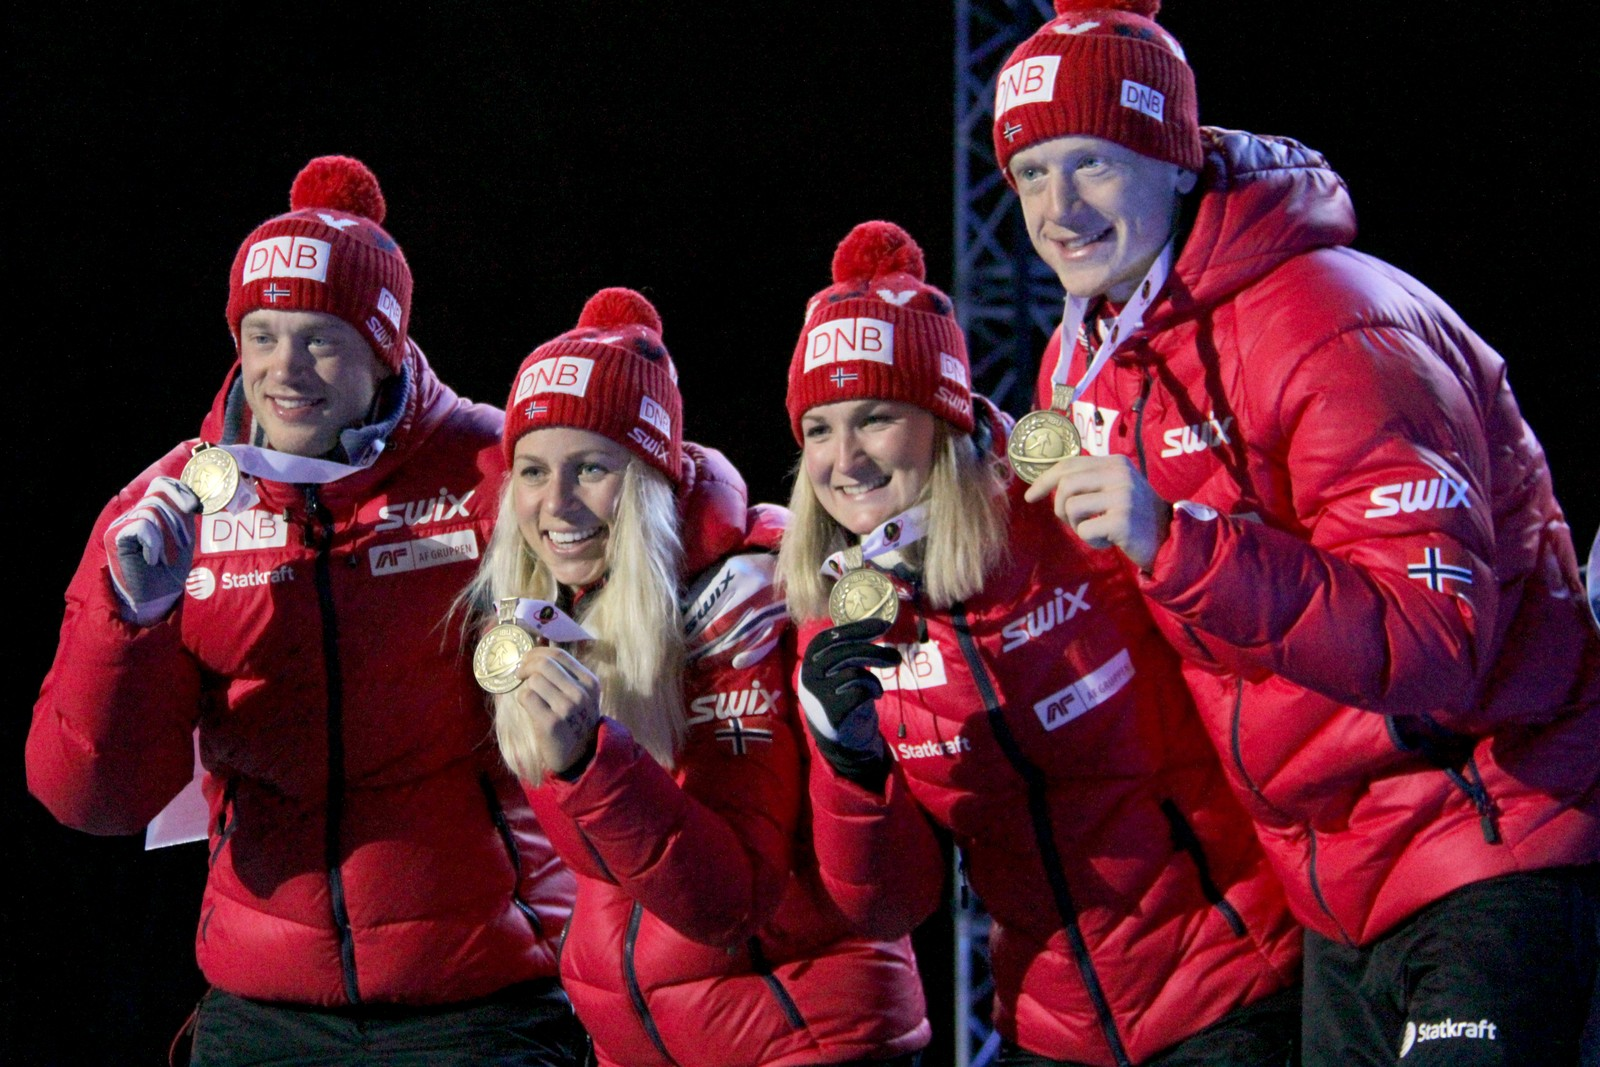 Norwegian bronze medal team, from left: Tarjei Bø, Tiril Eckhoff, Marte Olsbu and Johannes Thingnes Bø.